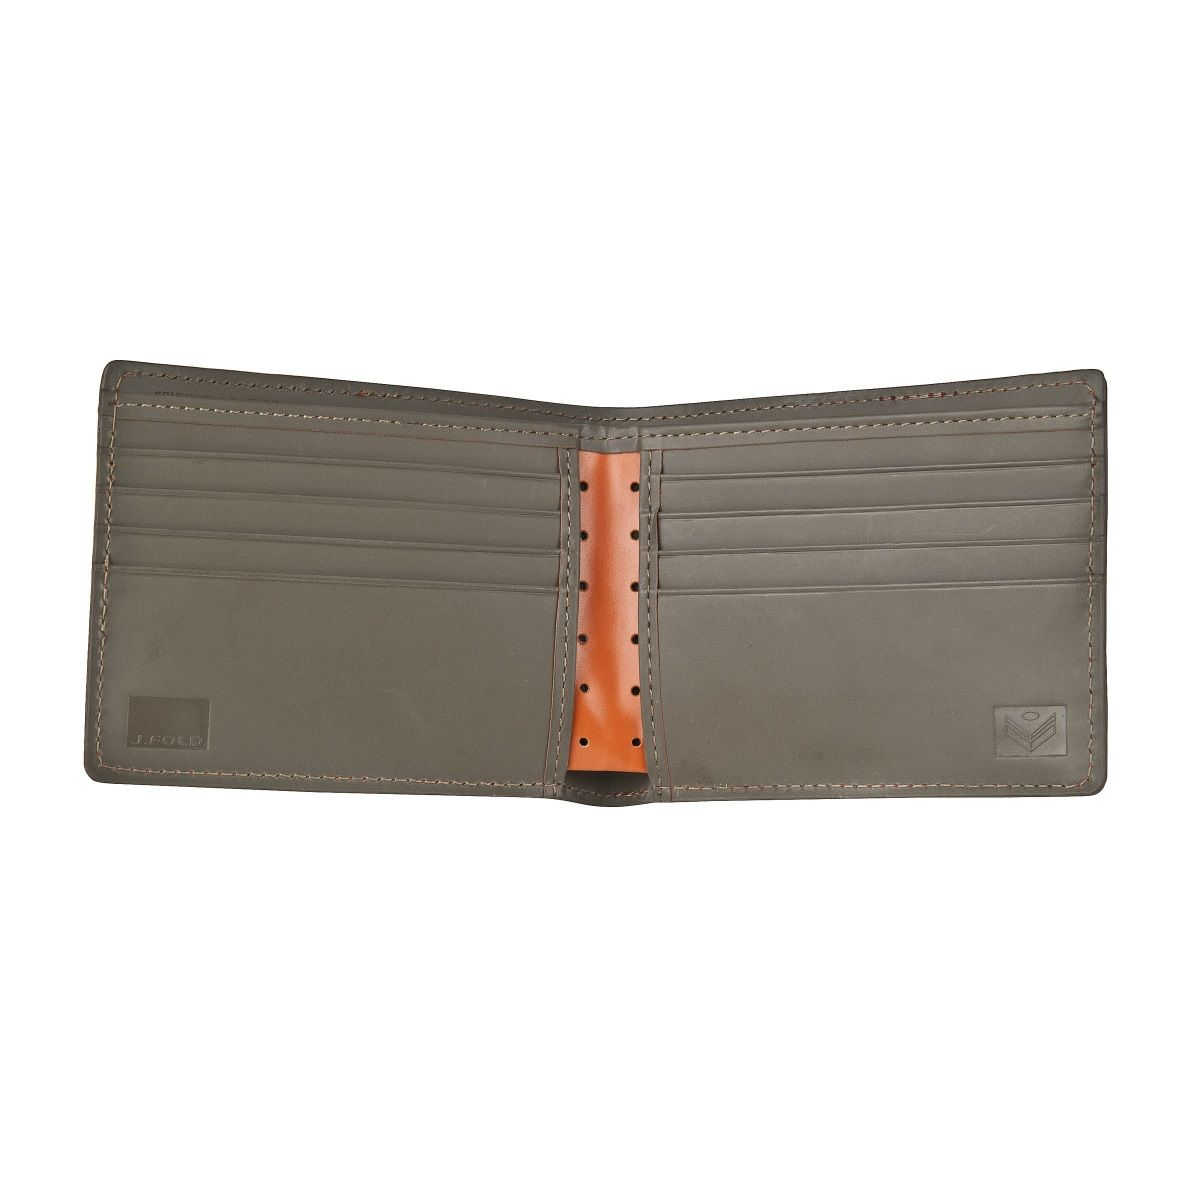 J.FOLD Loungemaster Leather Wallet  - Orange